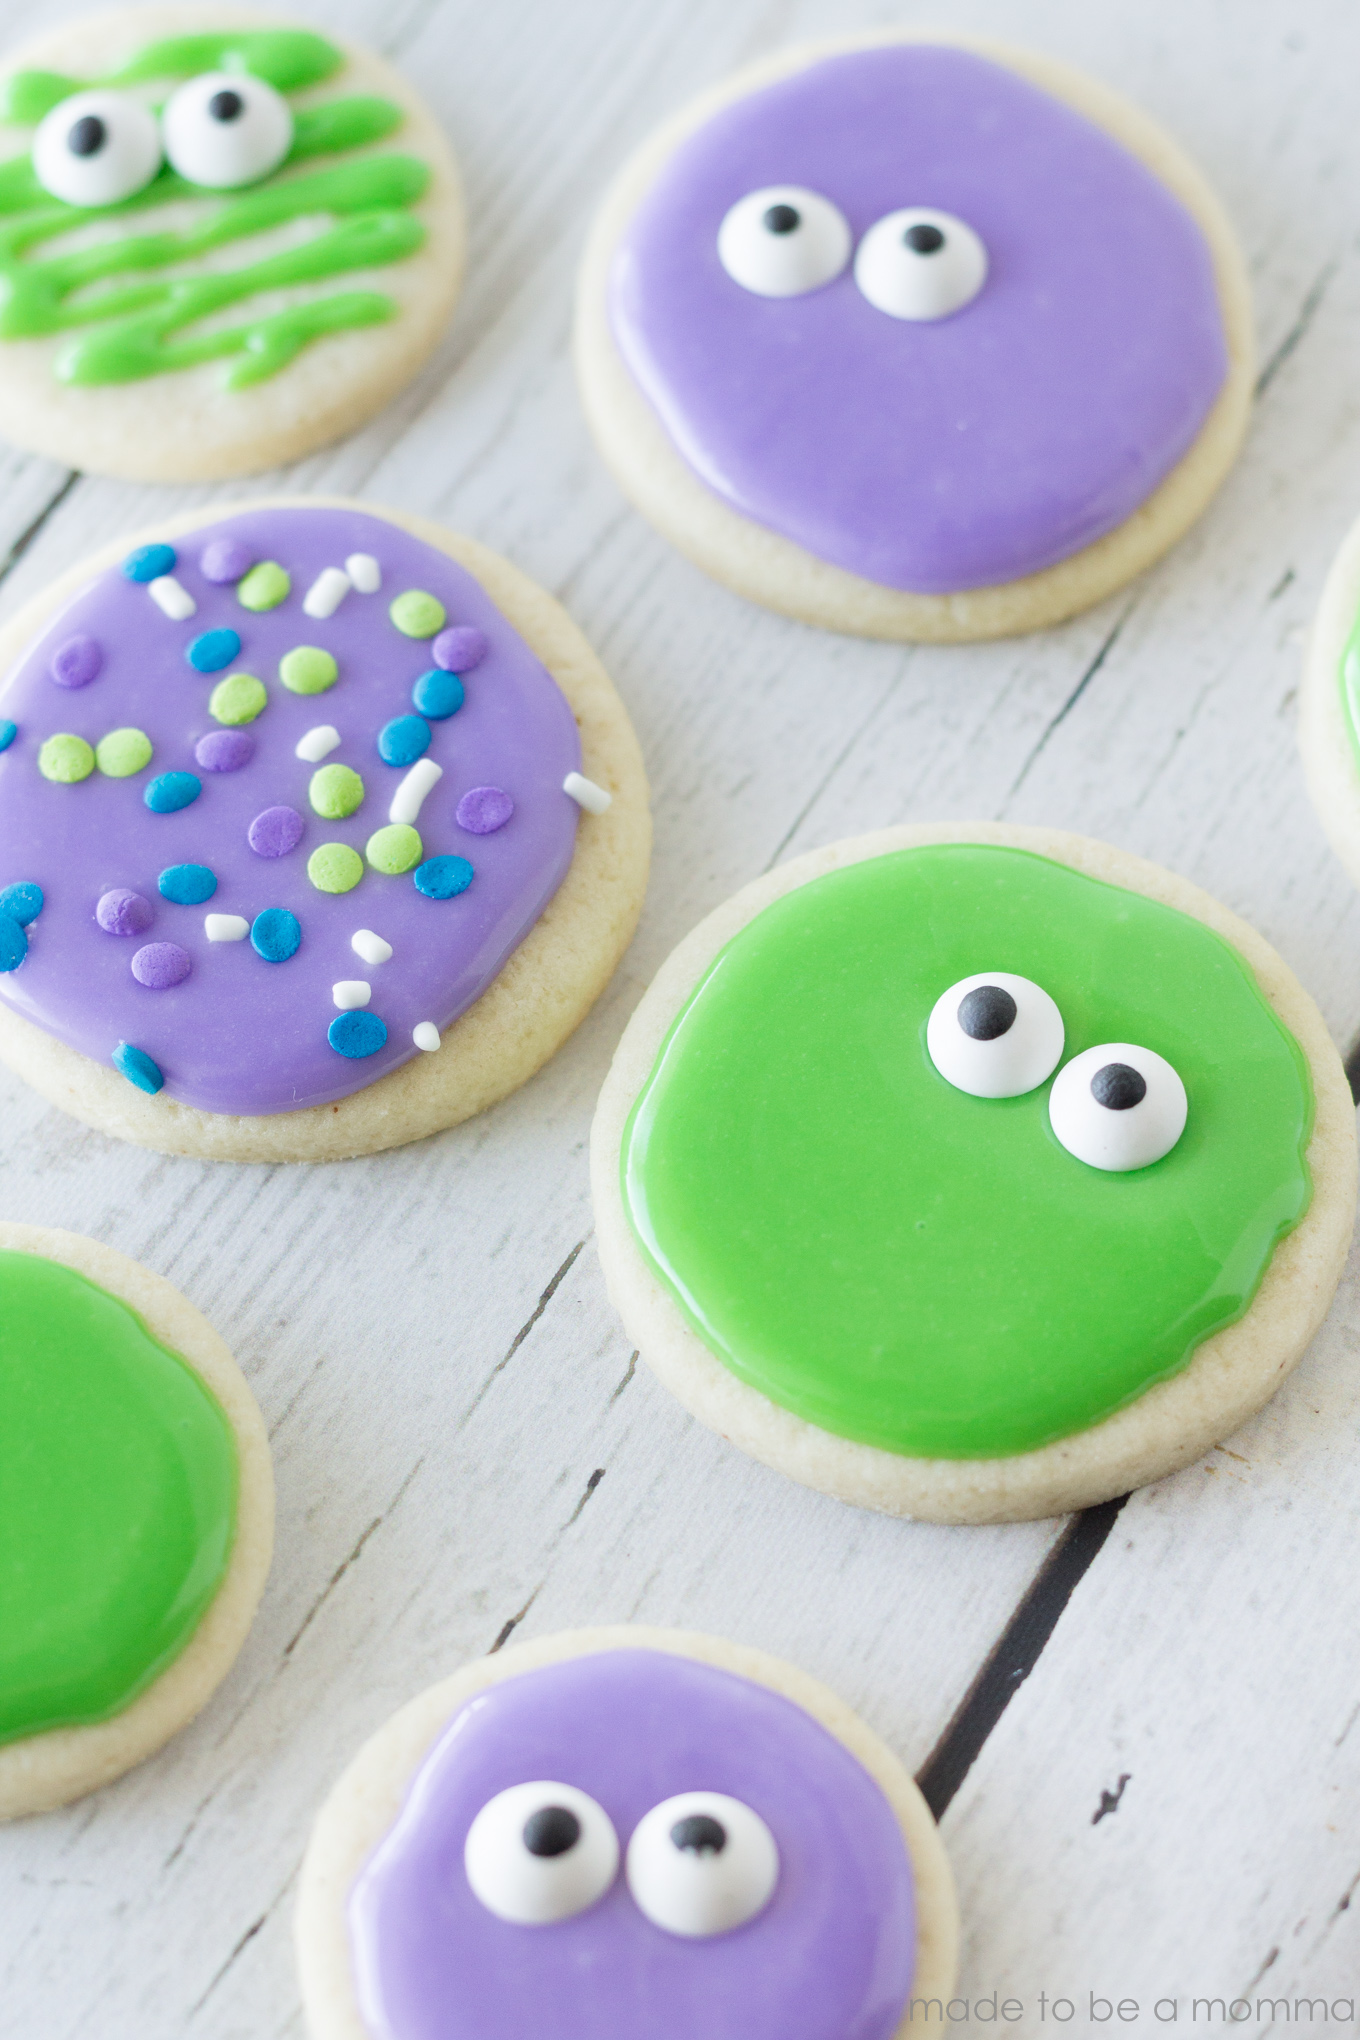 These Googly-Eyed Sugar Cookies are simple and great for any spooky celebration.